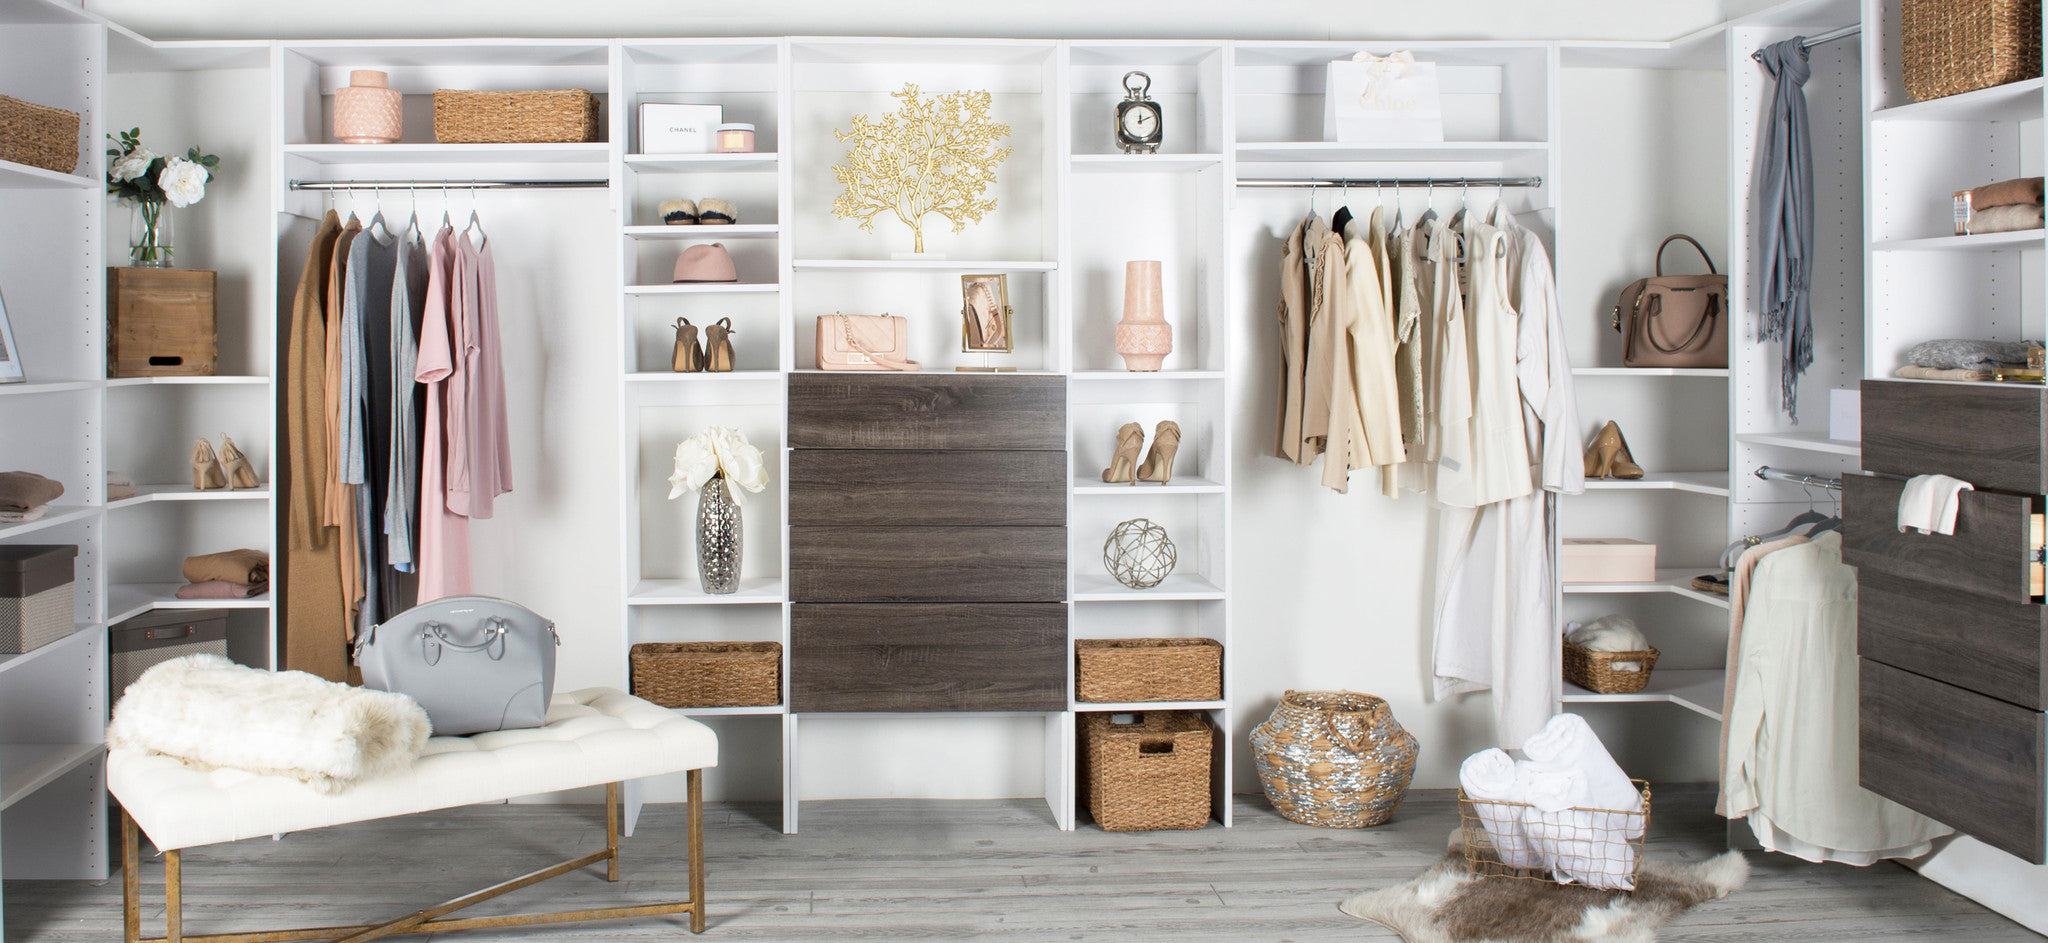 Bon A Modular Closet Is A Plywood Closet Organizer System You Can Design  Yourself, However You Want   The REAL High Quality, Low Cost Closet  Solution.